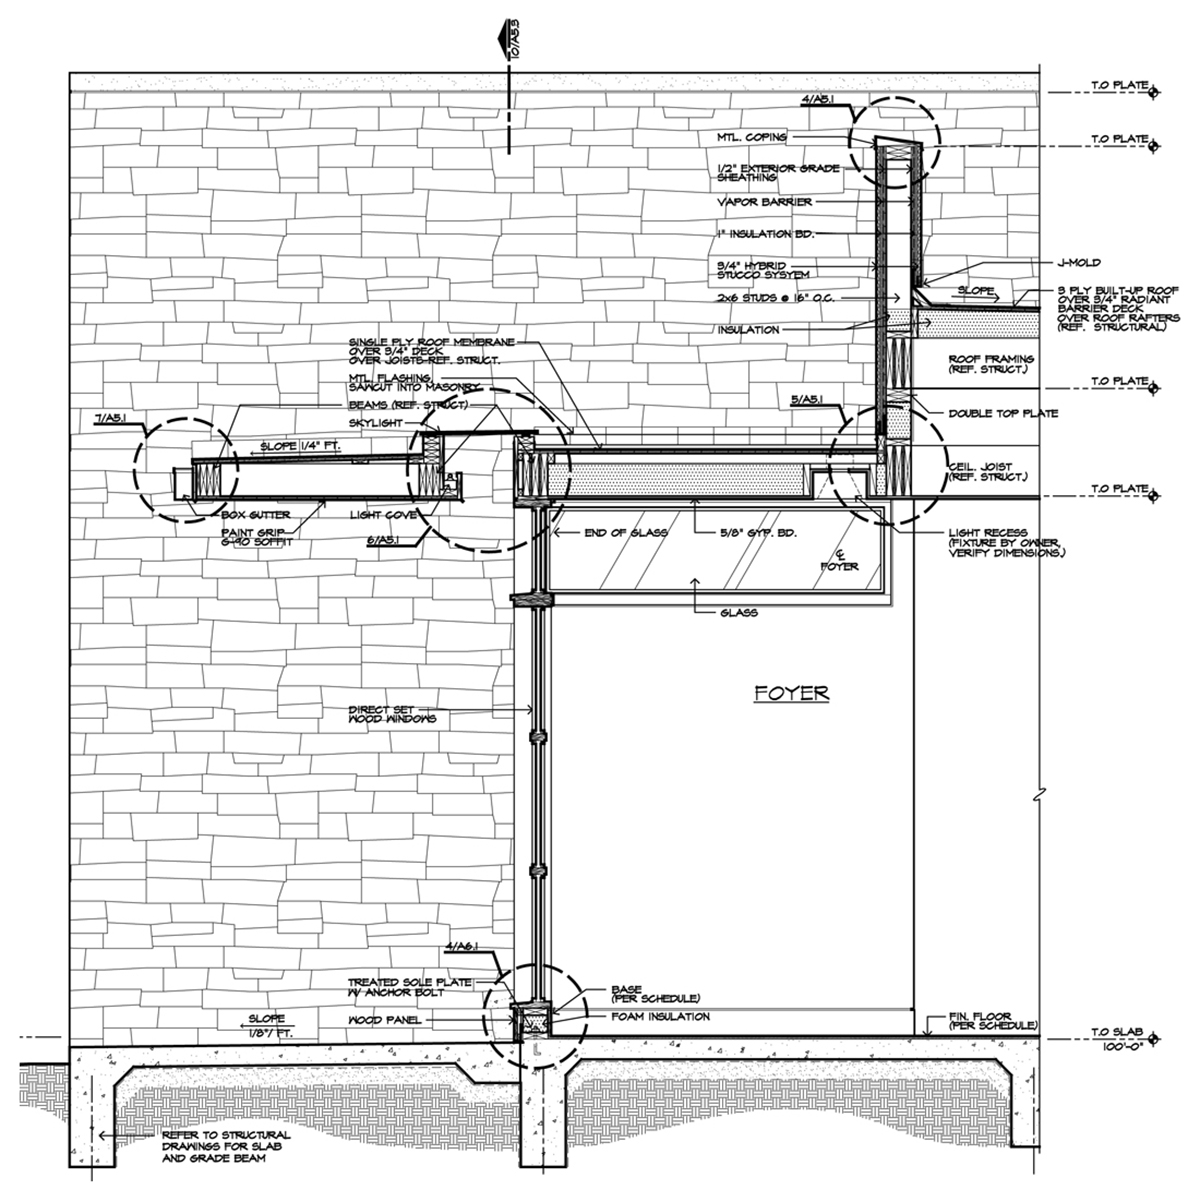 Architectural Drawing Skylight Wall Section - Bob Borson (Interior Bathroom elevation - Architectural Graphics: Arrows or Ticks?)